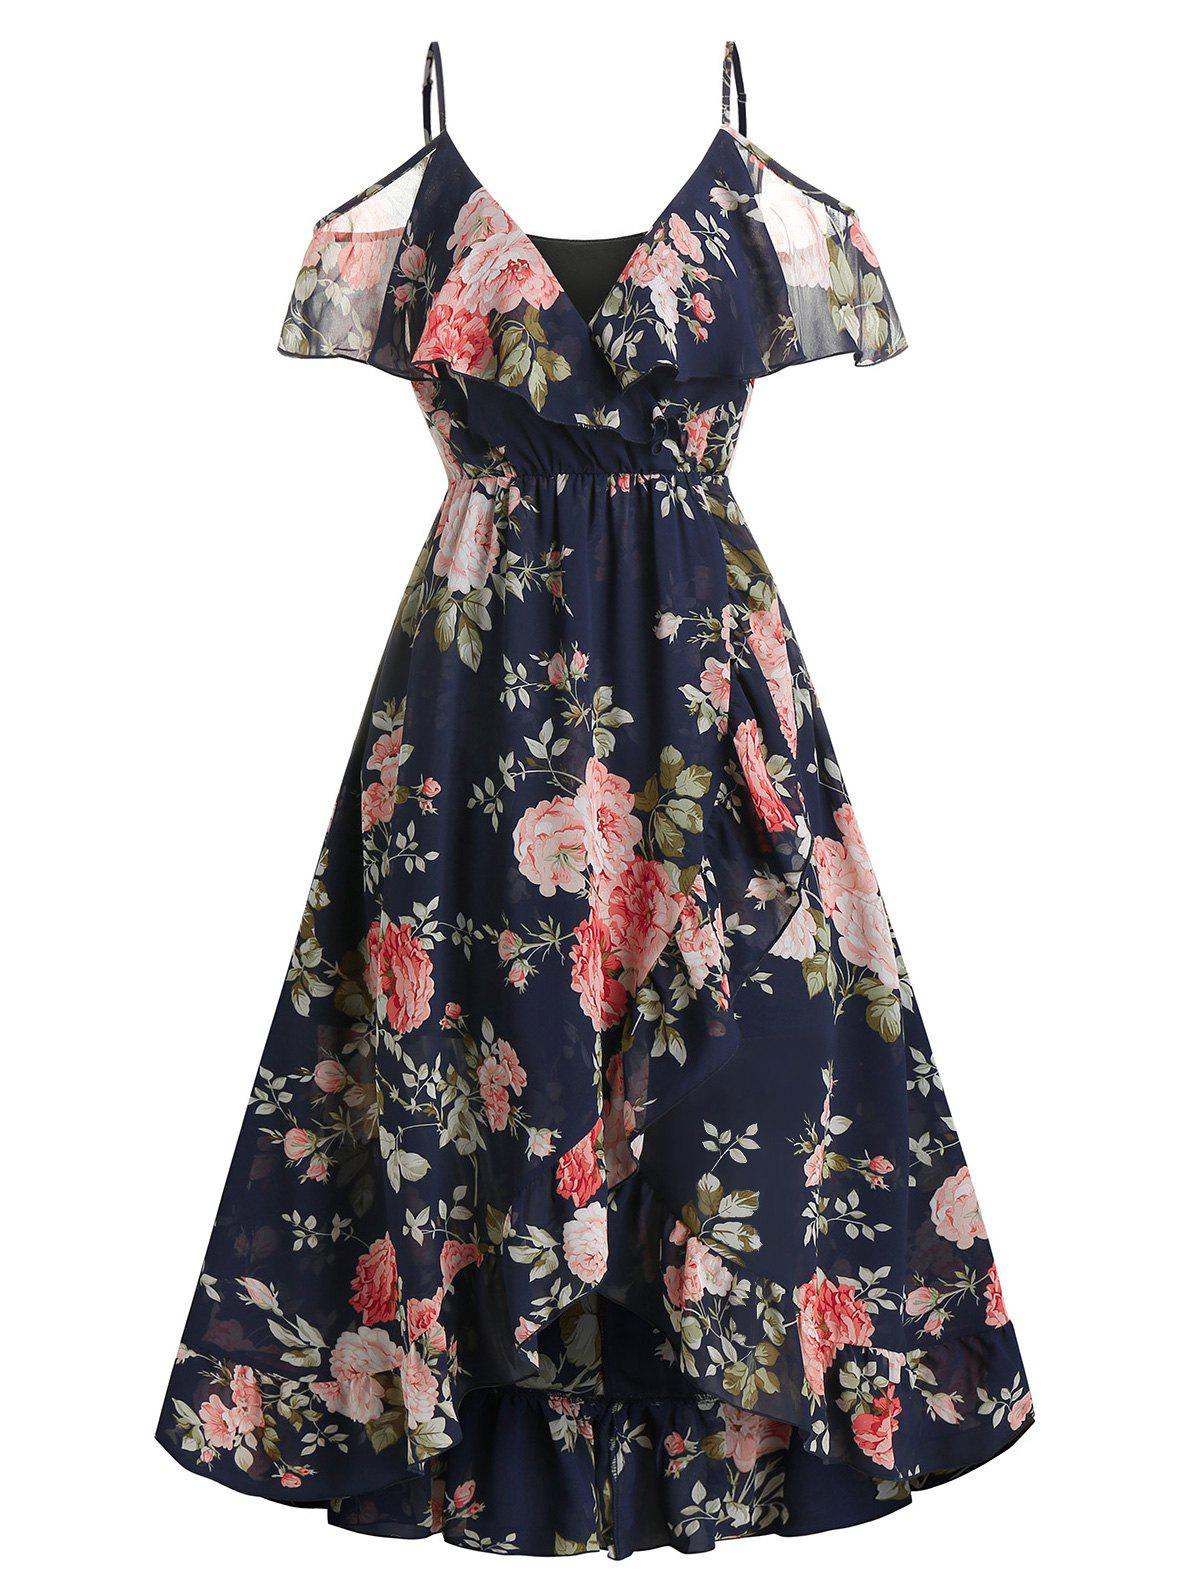 Floral Print Cold Shoulder Surplice Dress - CADETBLUE 3XL